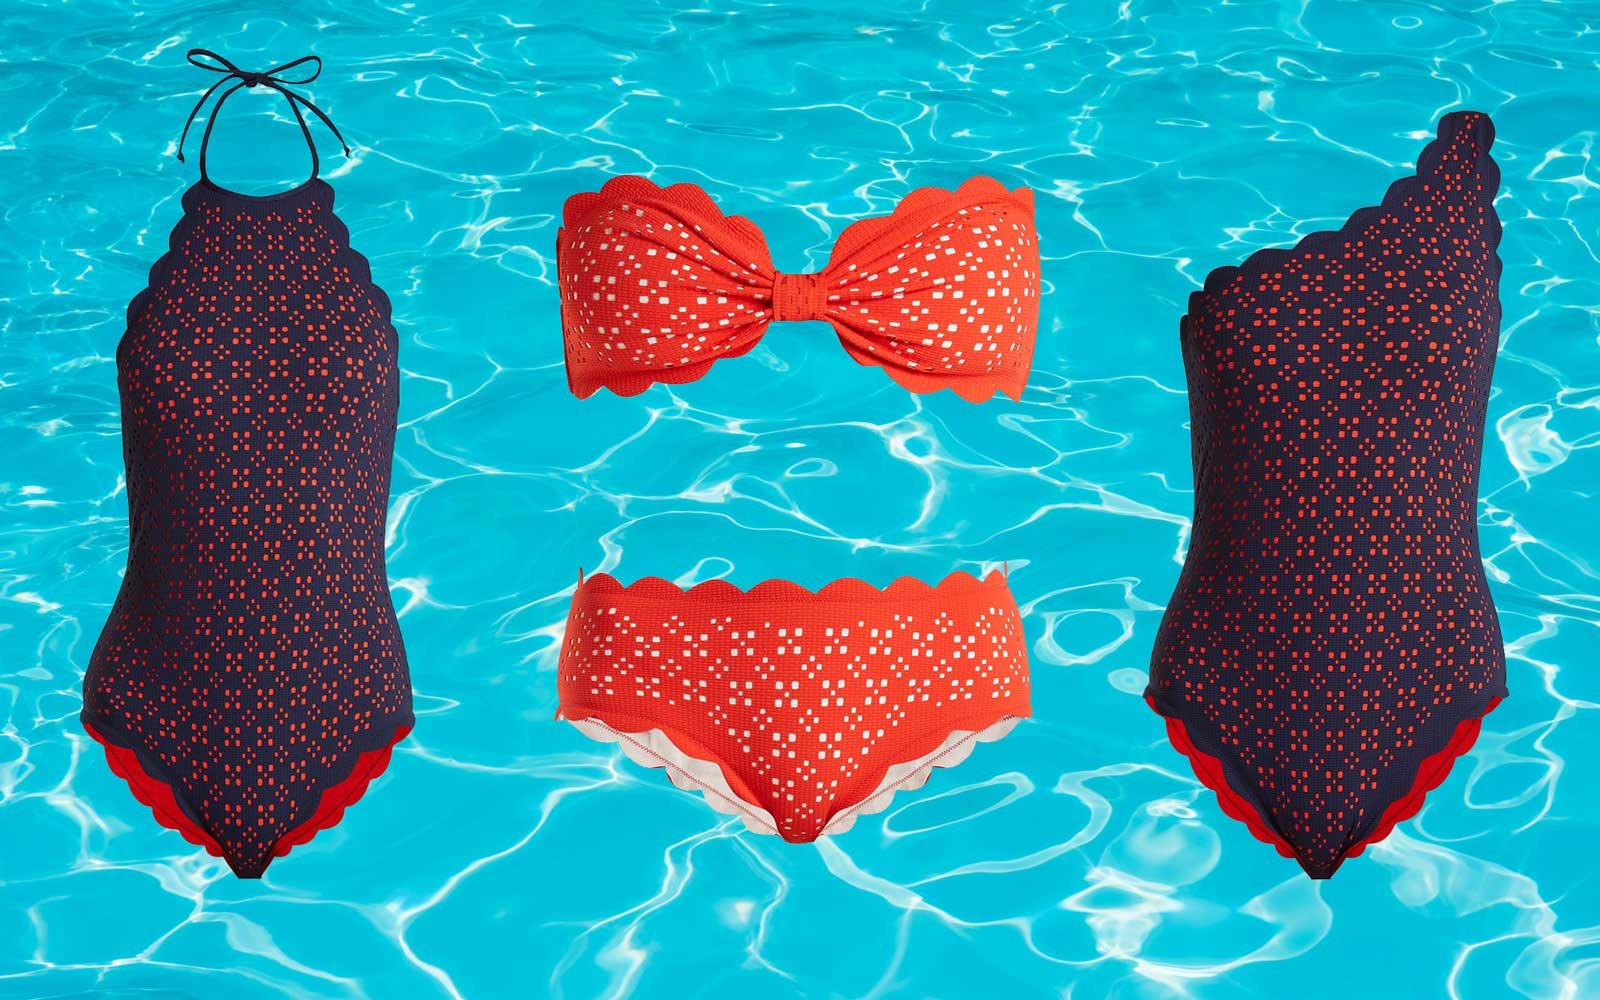 Shop the Scalloped Swimsuits You've Seen on Celebs Like Serena Williams